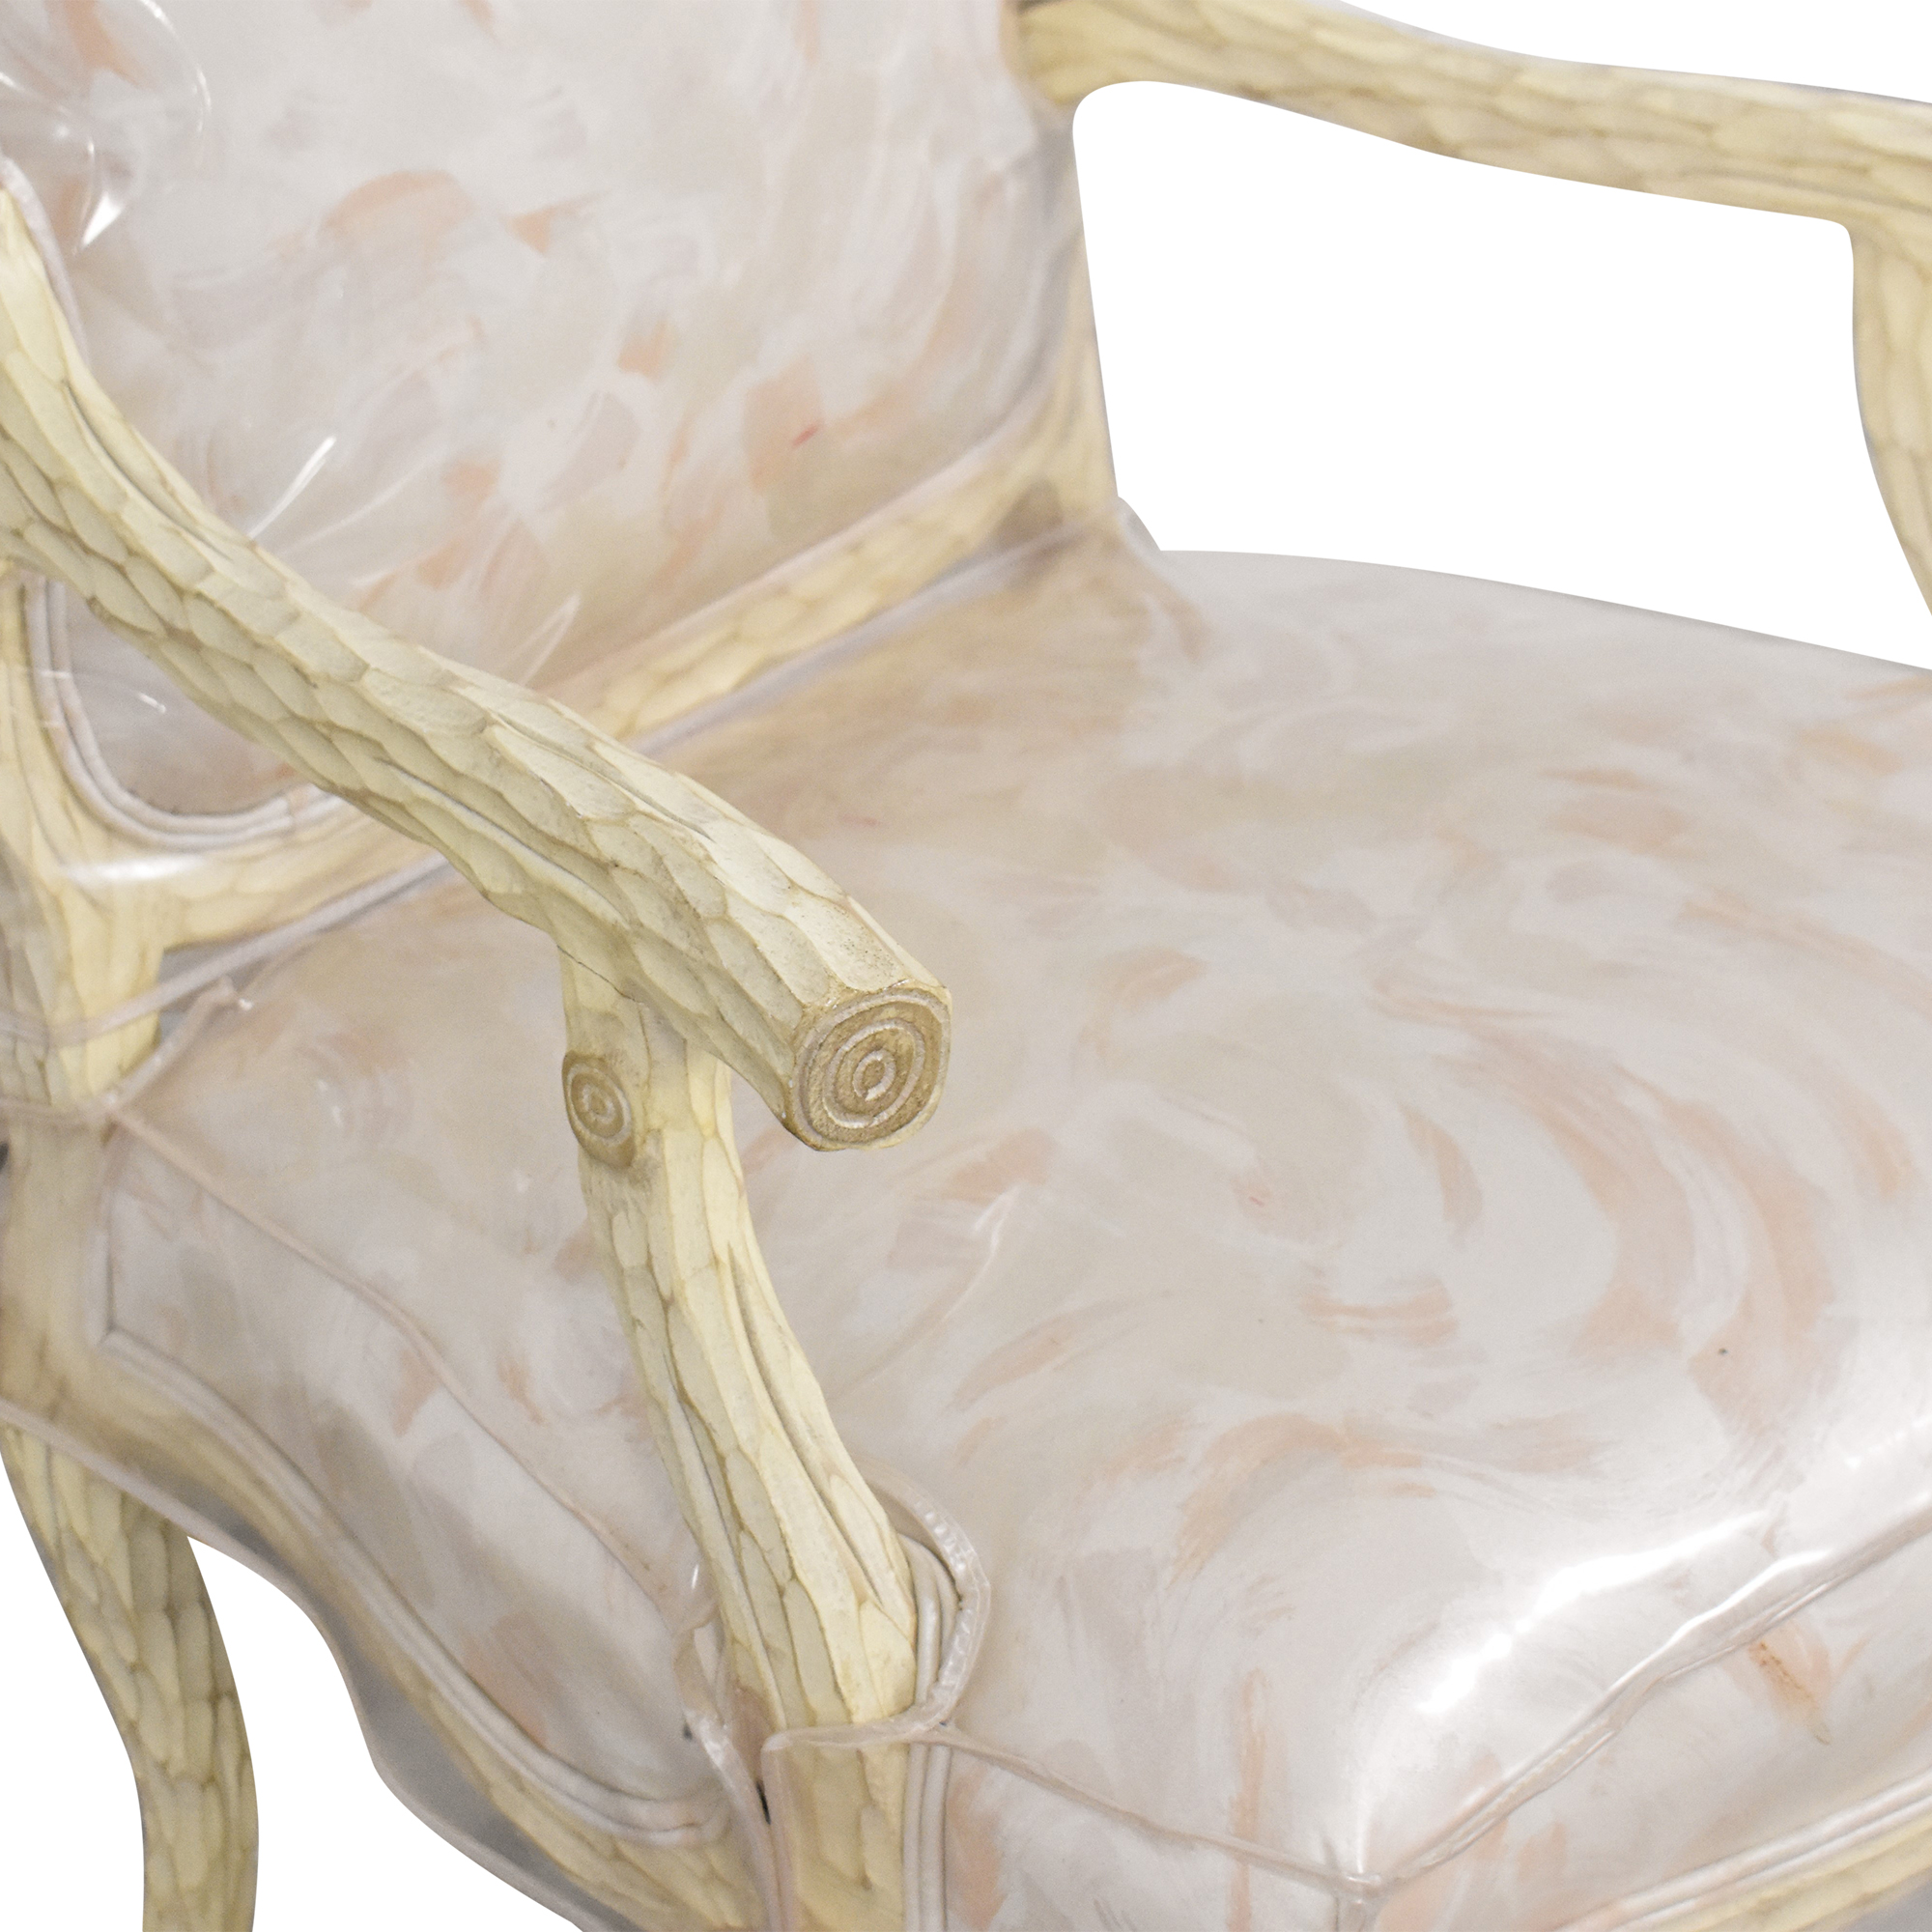 French Provincial-Style Arm Chair second hand